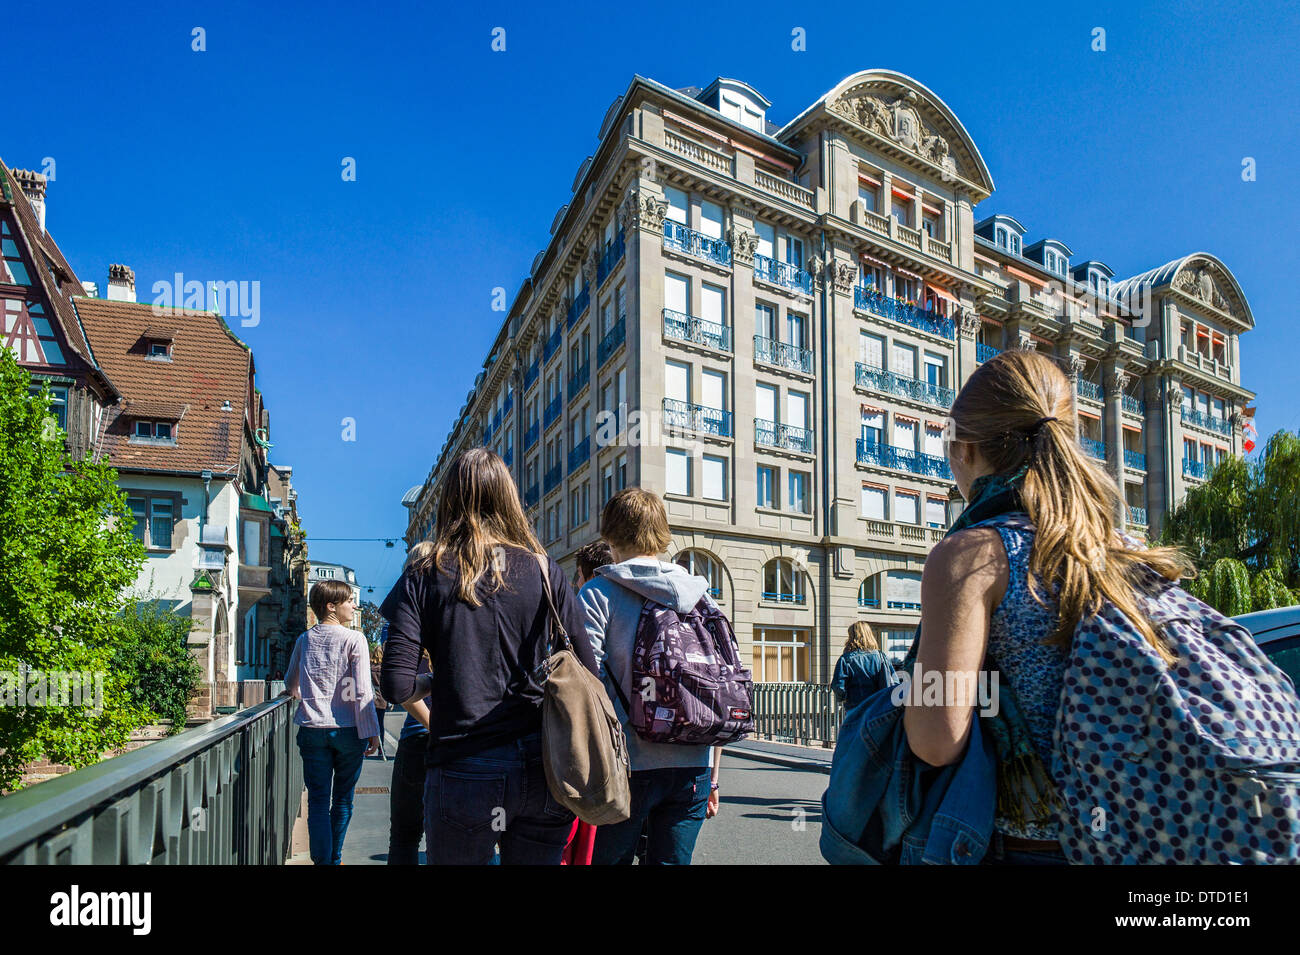 Students going to high school Strasbourg Alsace France - Stock Image